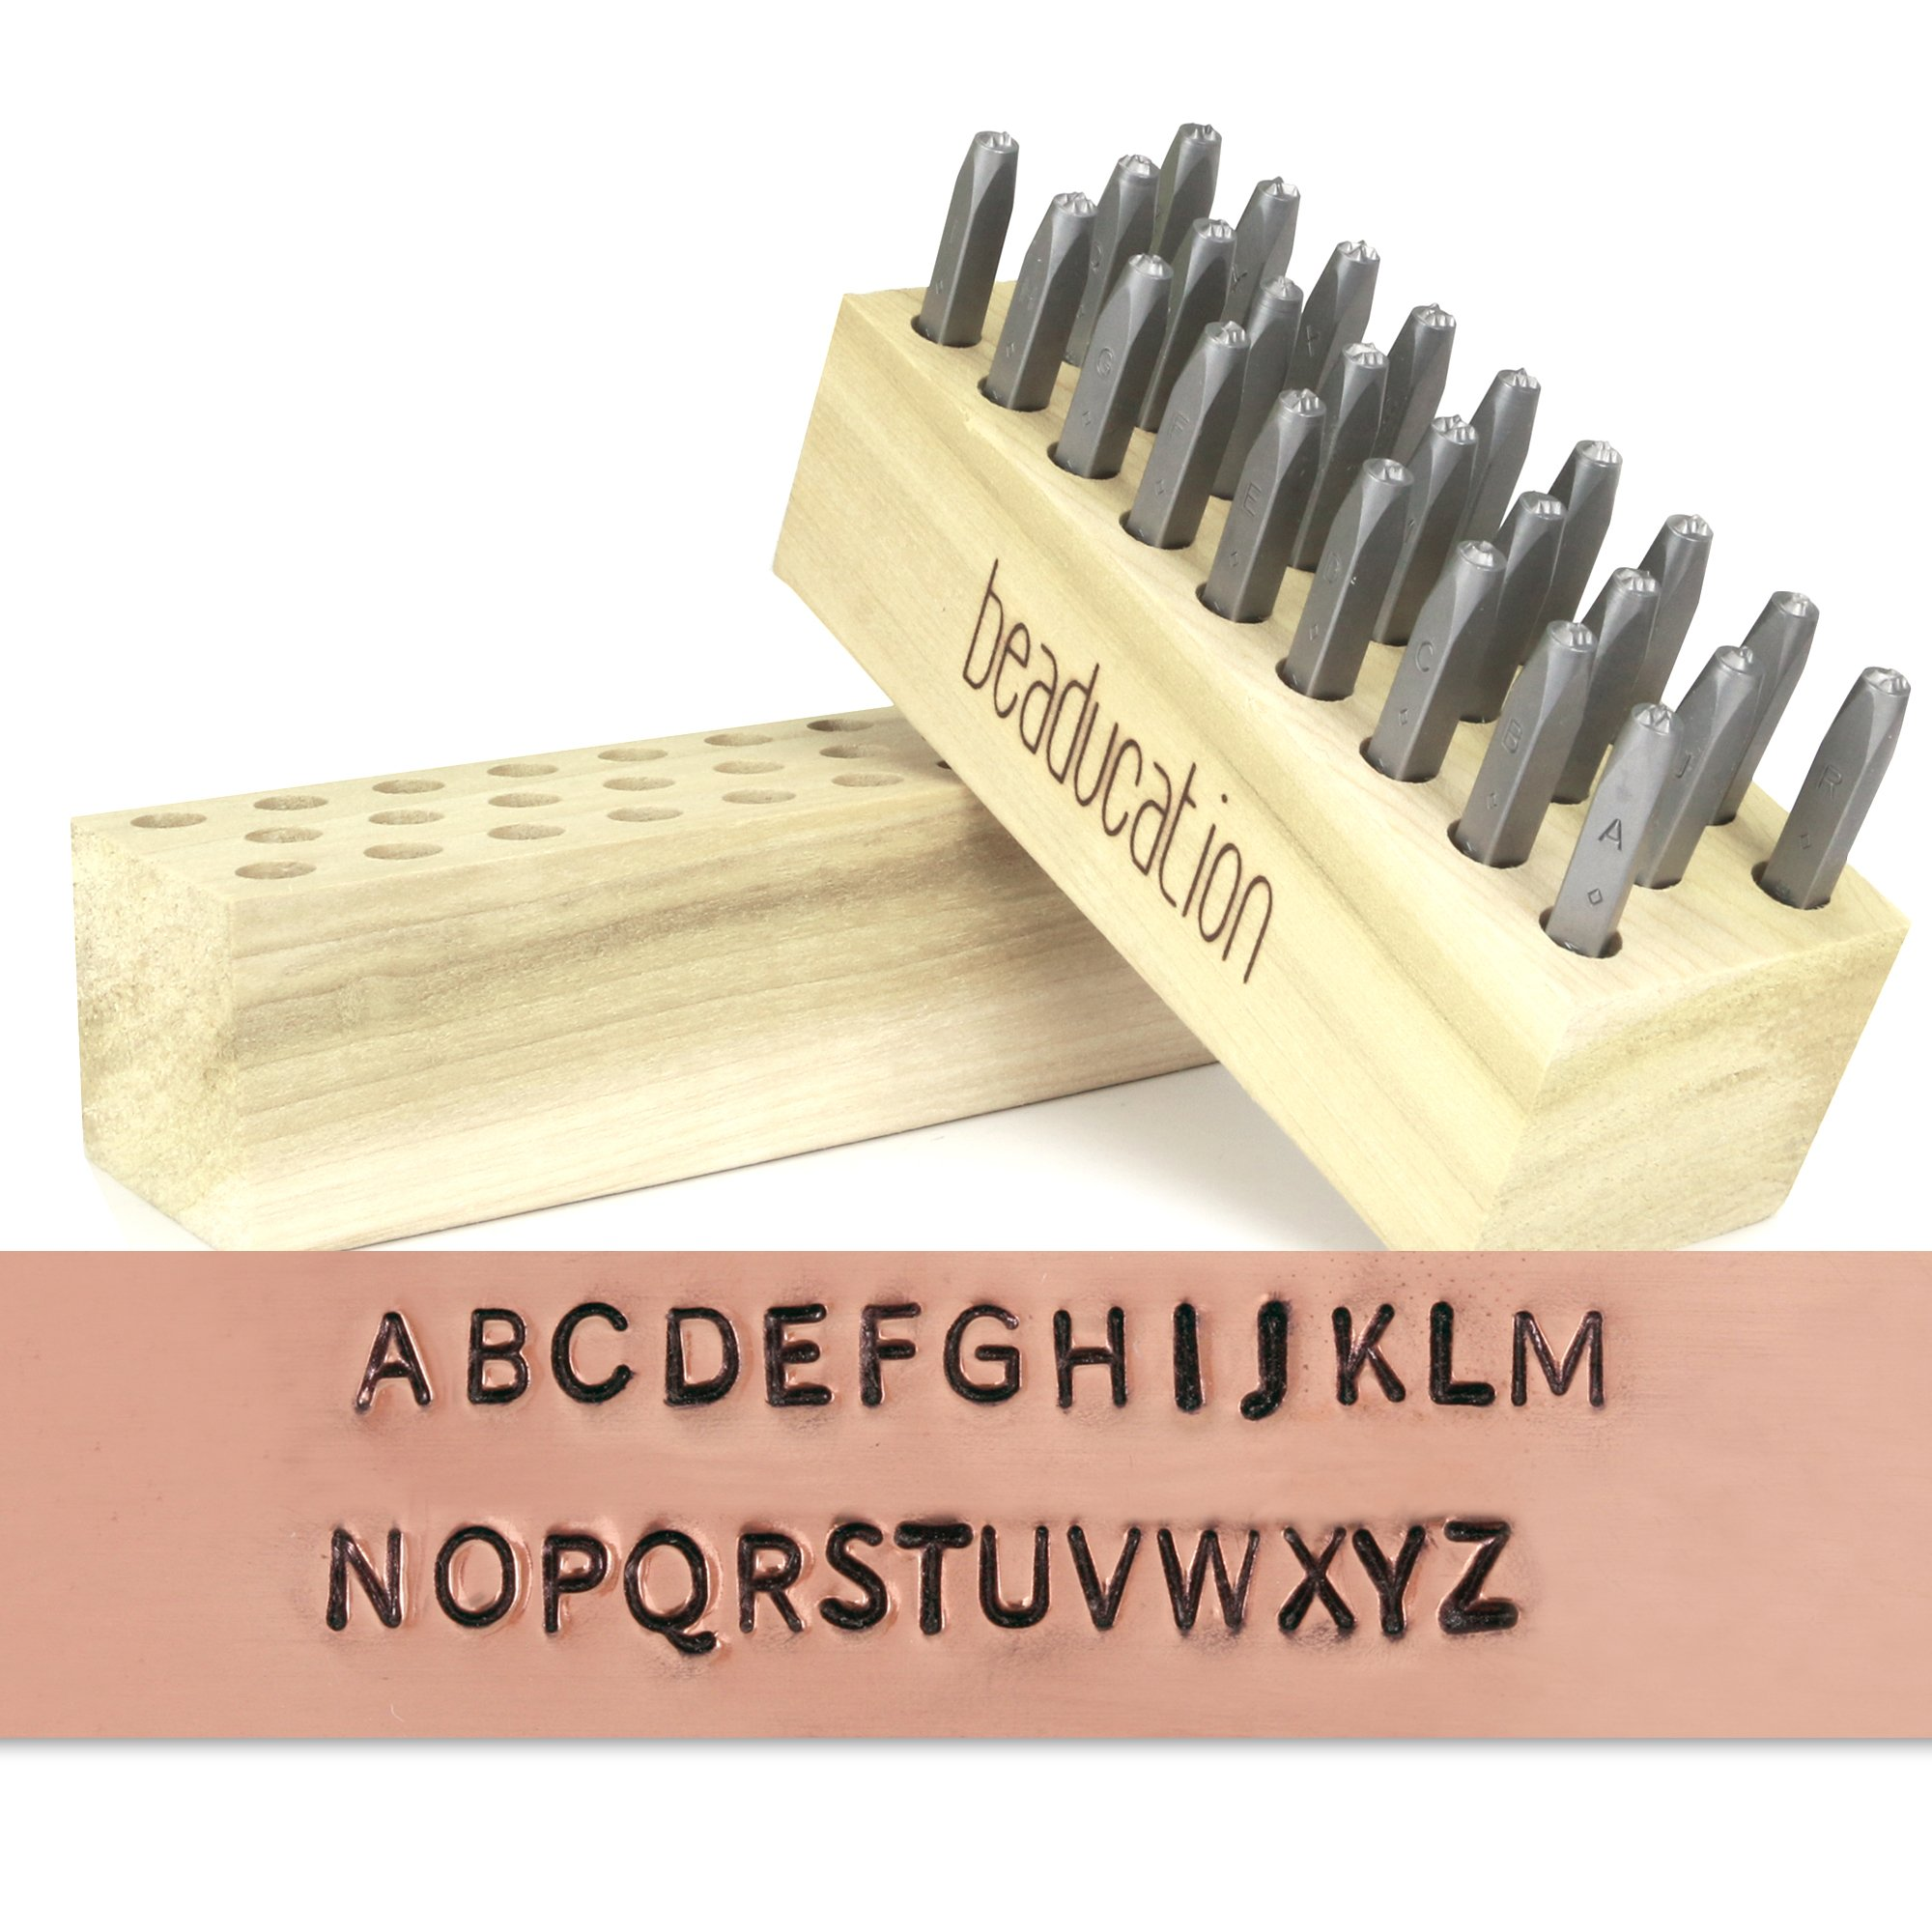 """Block Metal Letter Stamp Set, Basic Font, Uppercase 3/32"""" (2.4mm) (Alphabet Punch Tool Set A-Z) for Stamping Metal for Hand Stamped DIY Jewelry Crafts - Beaducation Original"""